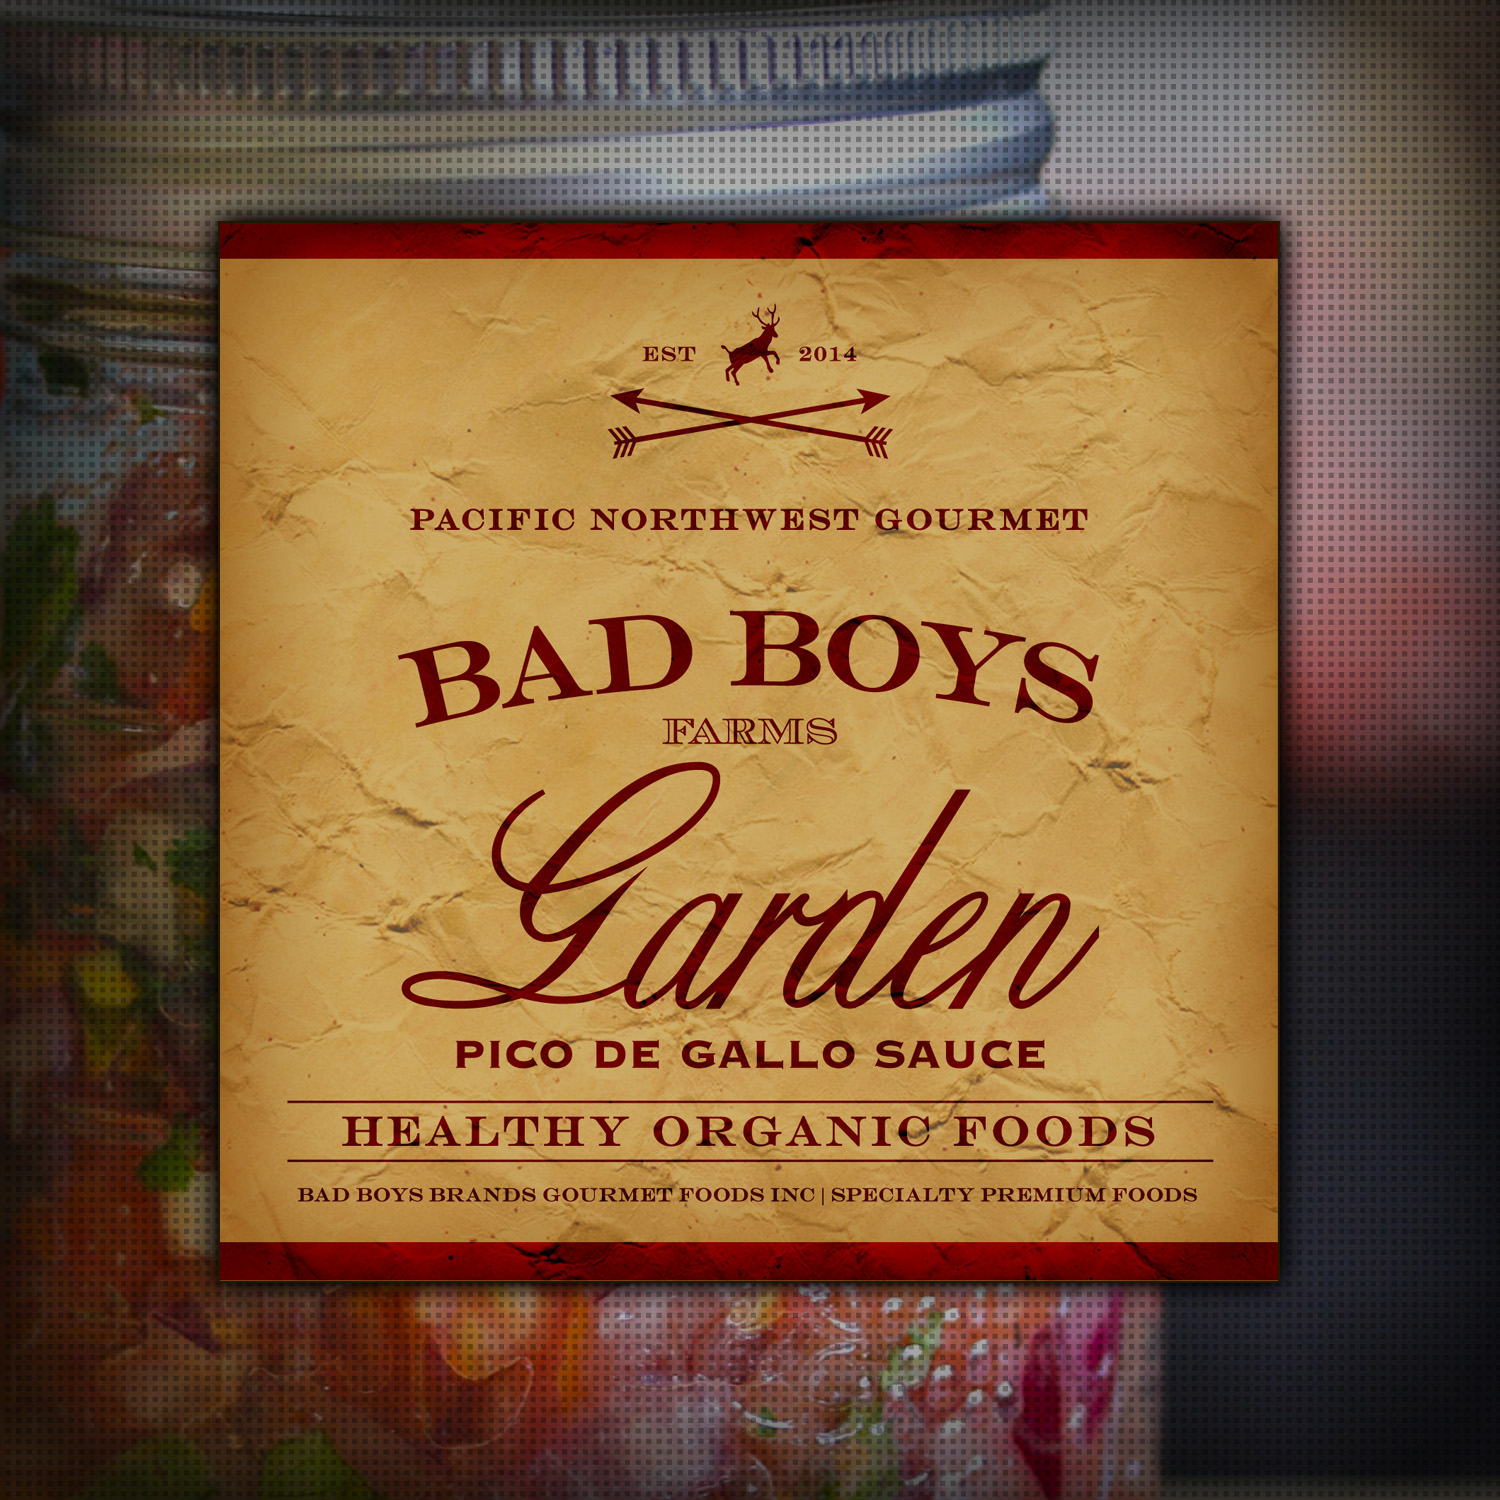 Bad Boys Garden Pico De Gallo [v3] Sauce [tm] by Graham Hnedak 24 SEPT 2014.jpg